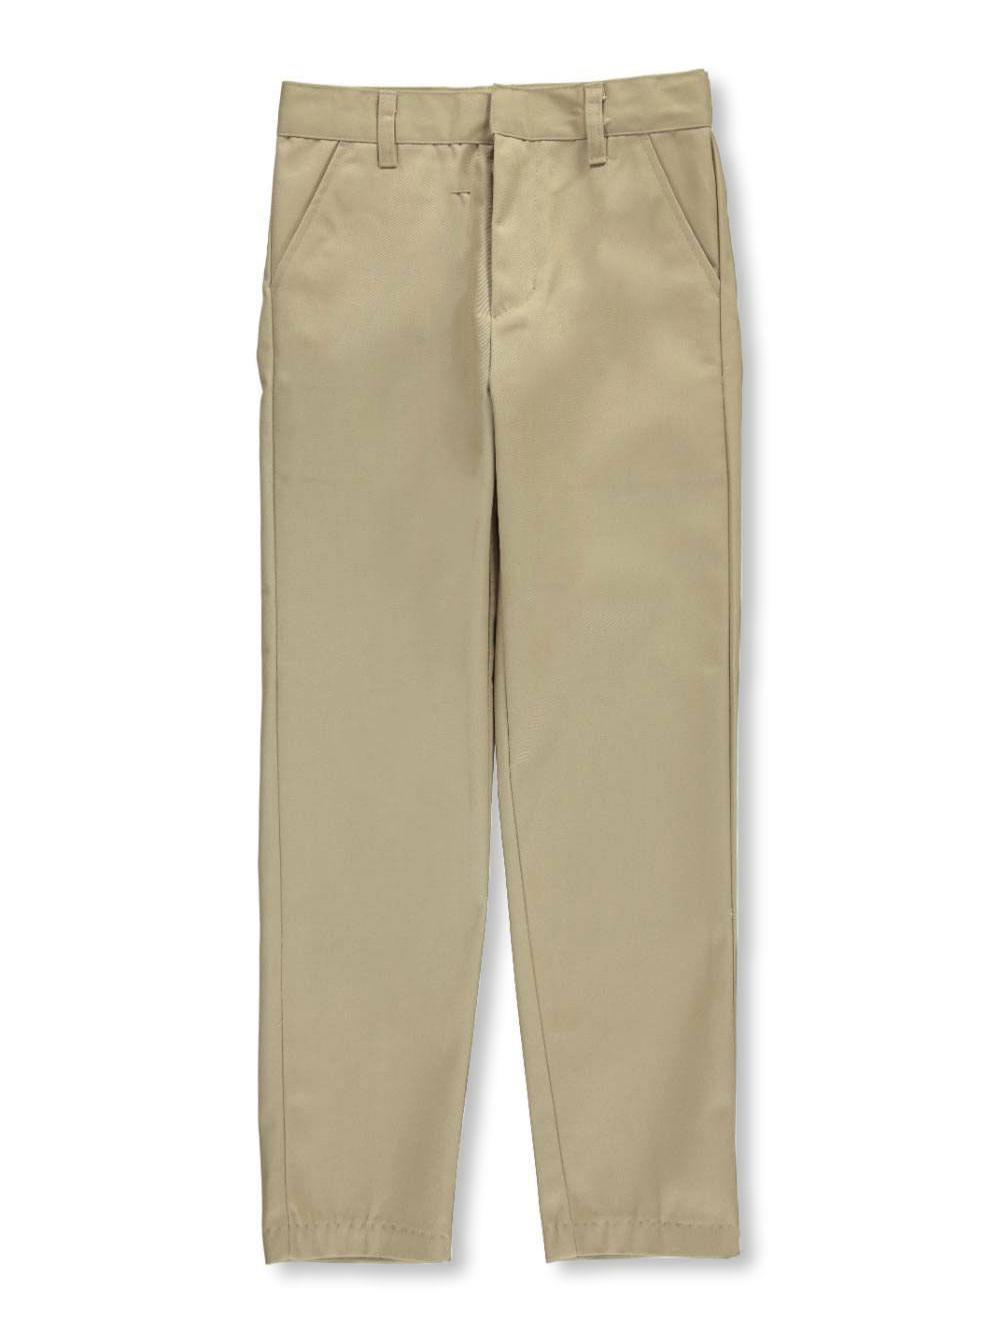 Galaxy Big Boys' School Uniform Slim Pants (Sizes 8 - 20) - khaki, 20